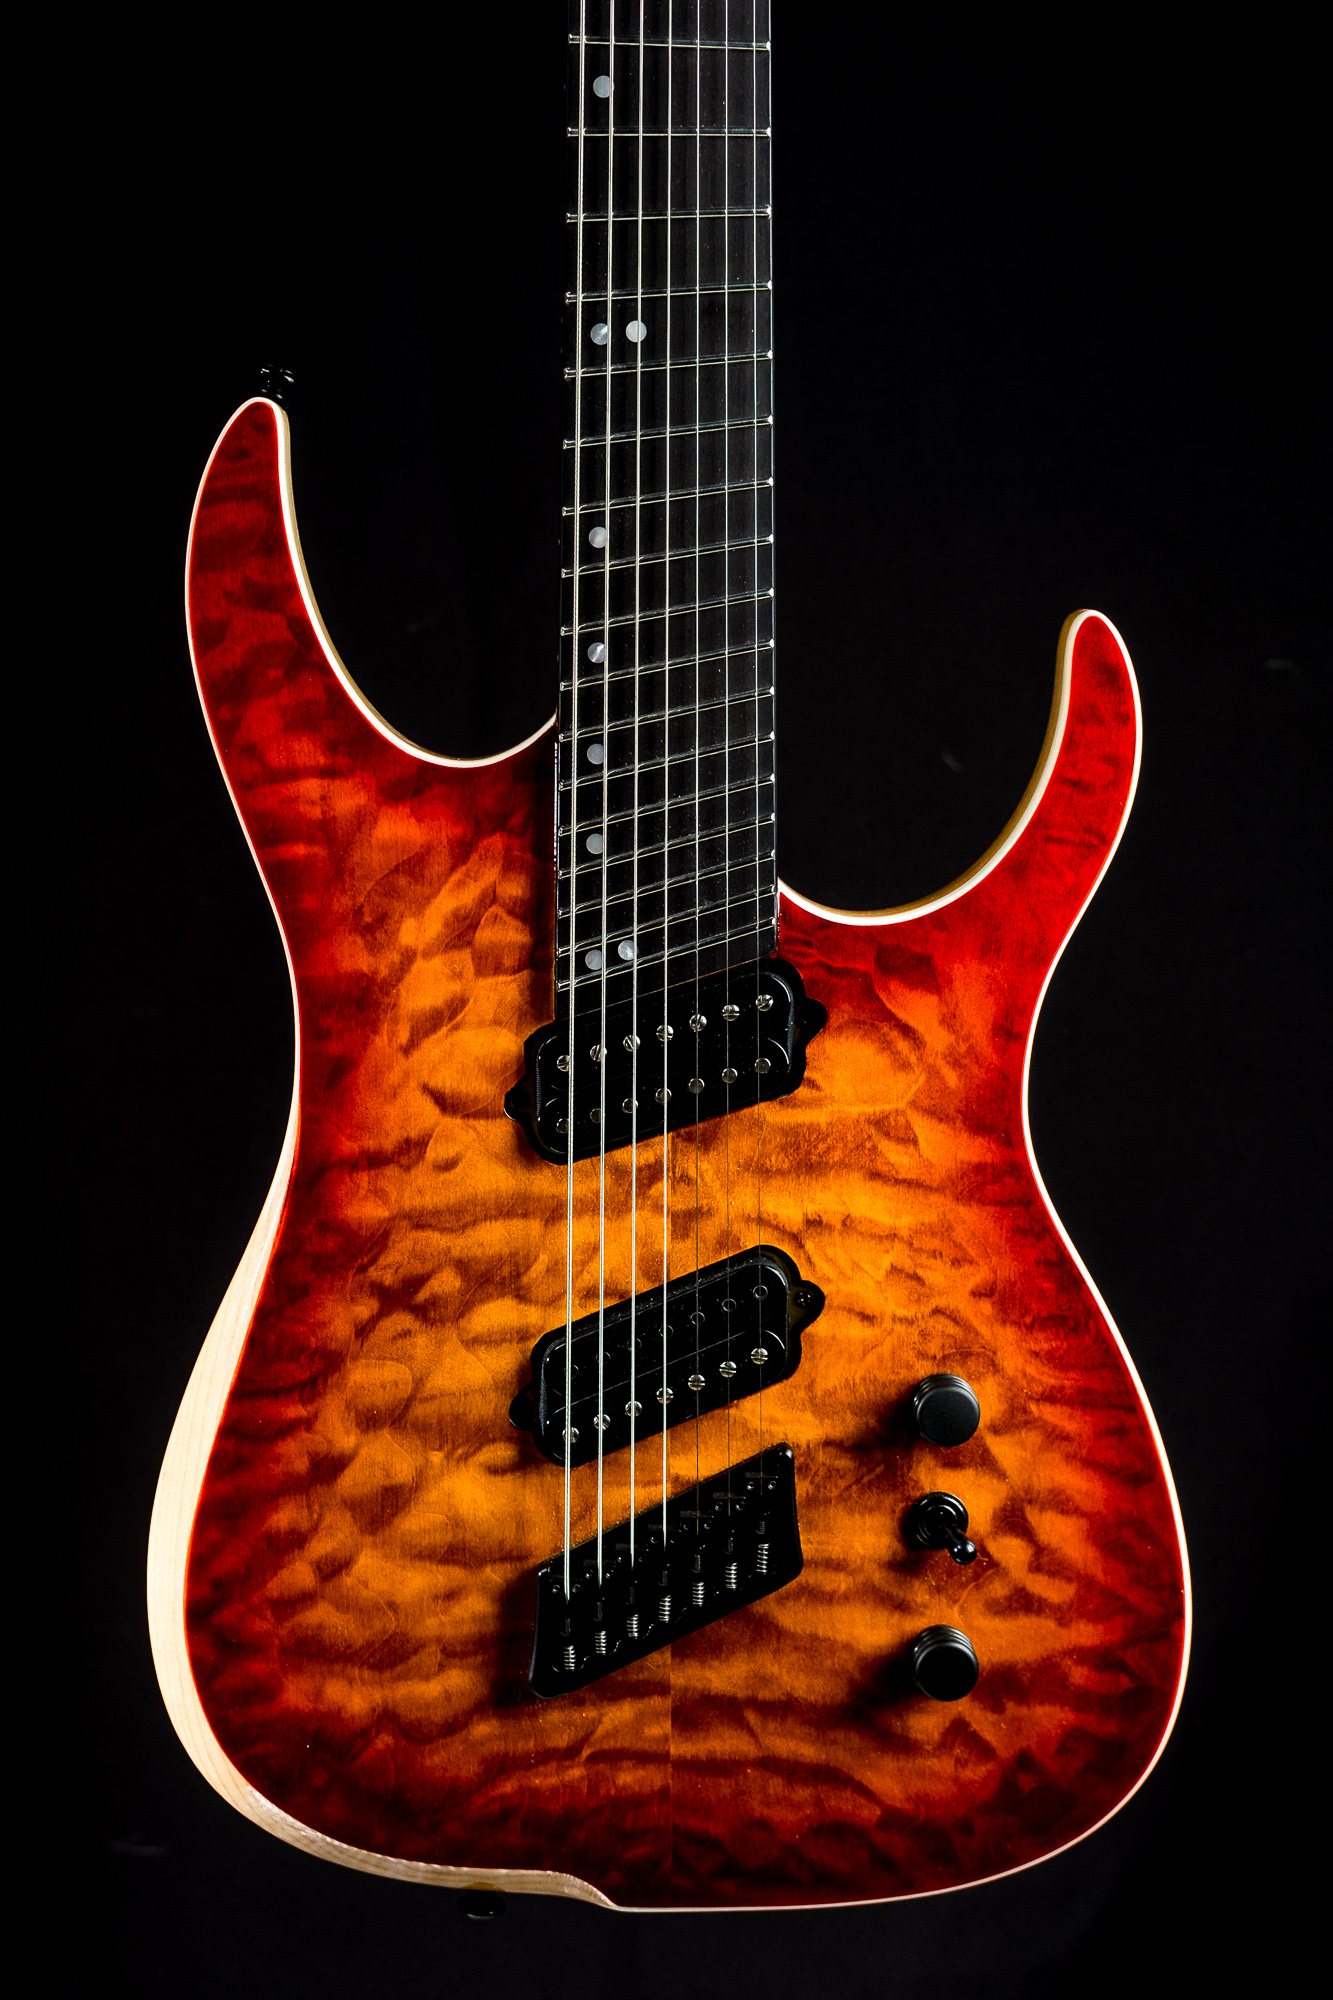 Ormsby GTR Run 2 Hype Cherry Burst 7-2.jpg